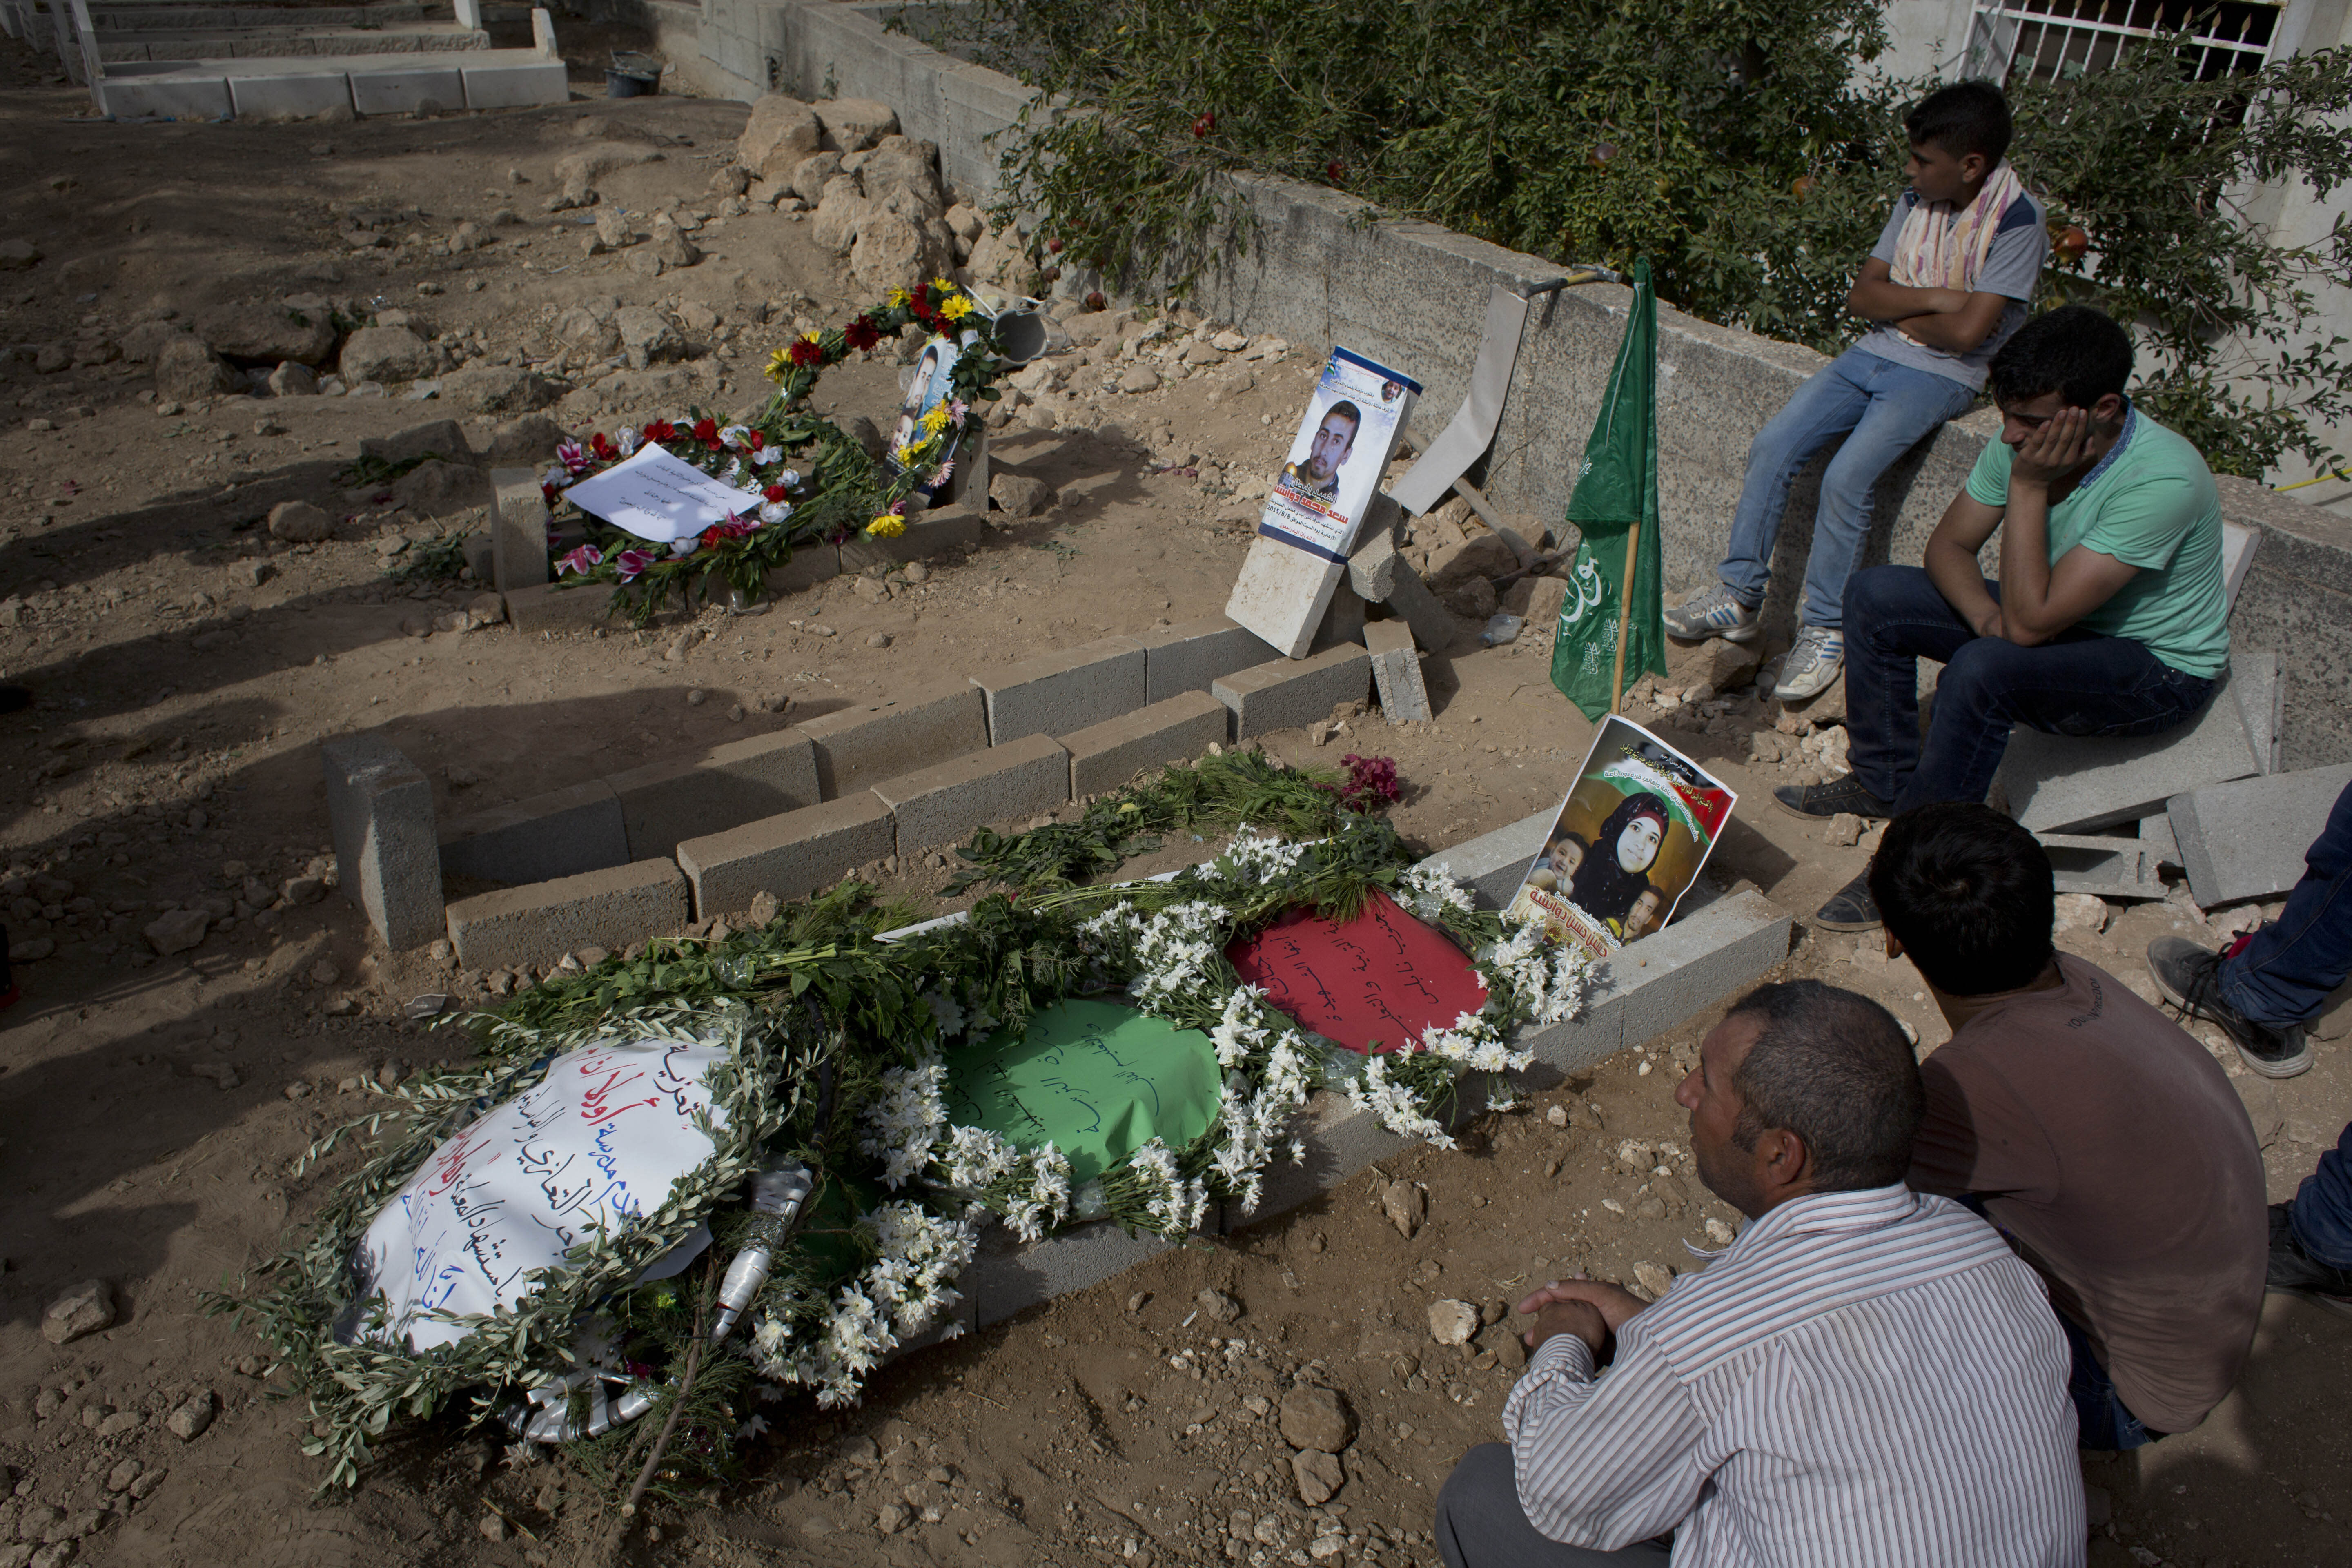 Israeli minor gets 3 1/2 years for role in deadly 2015 arson